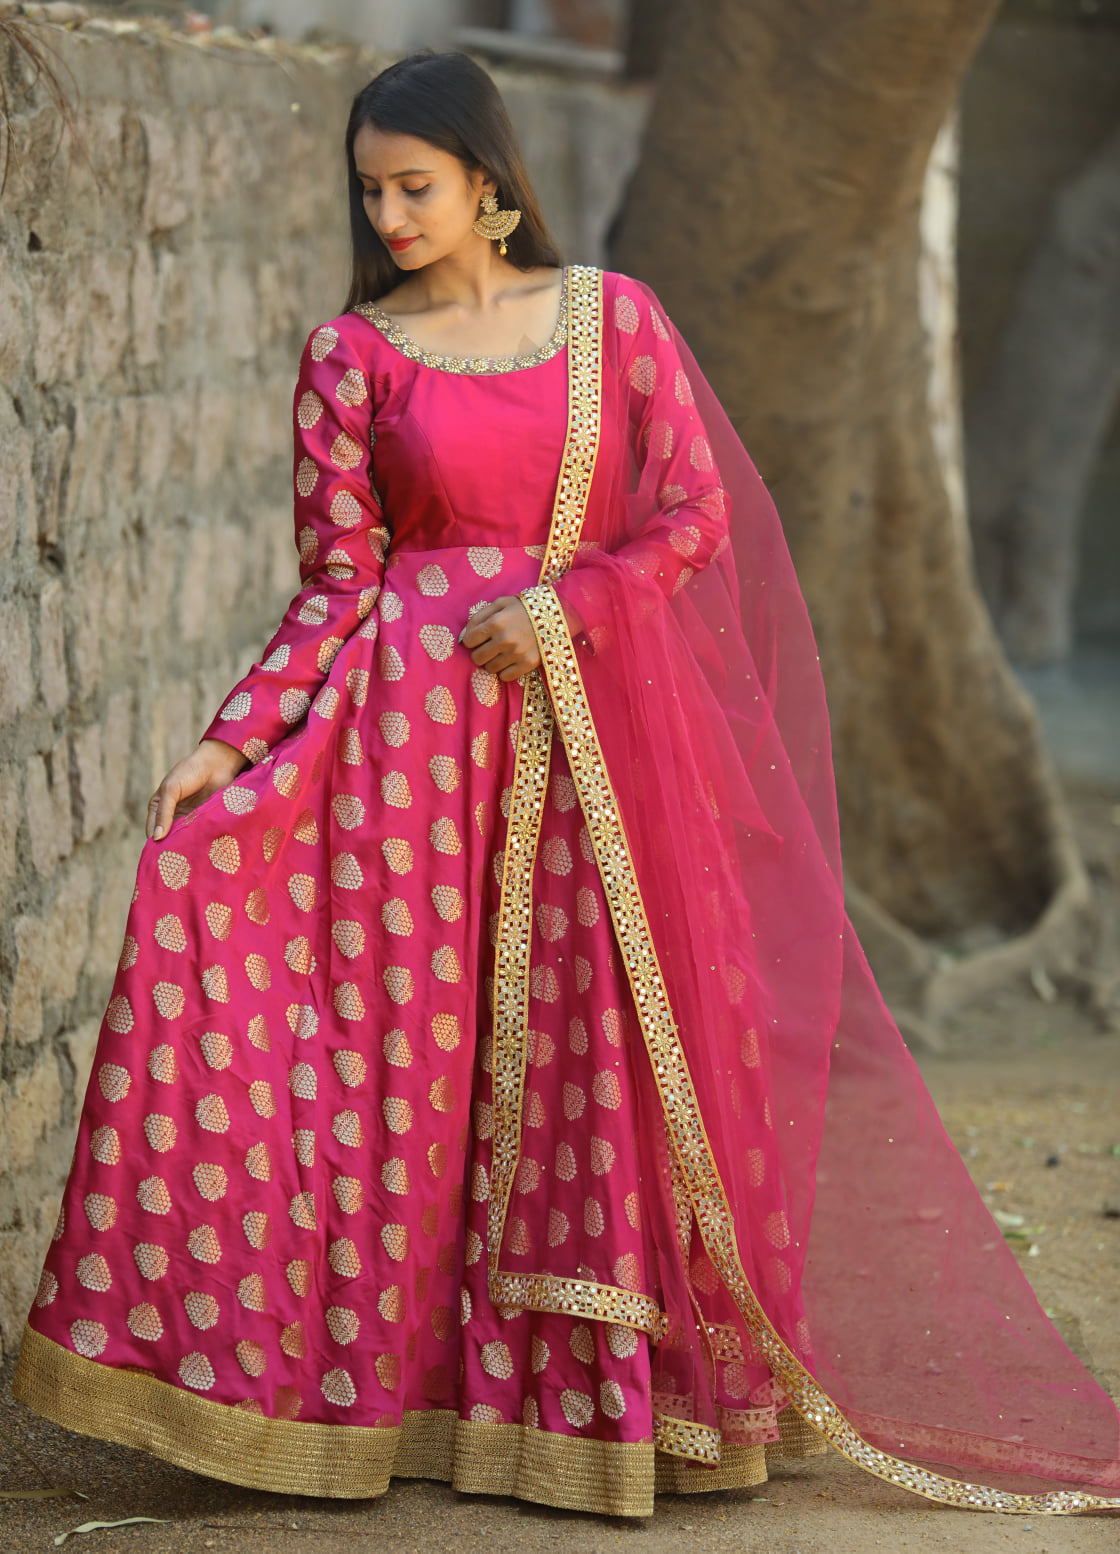 Stunning pink color designer floor length anarkali dress with net dupatta and full sleeves. 2021-03-18